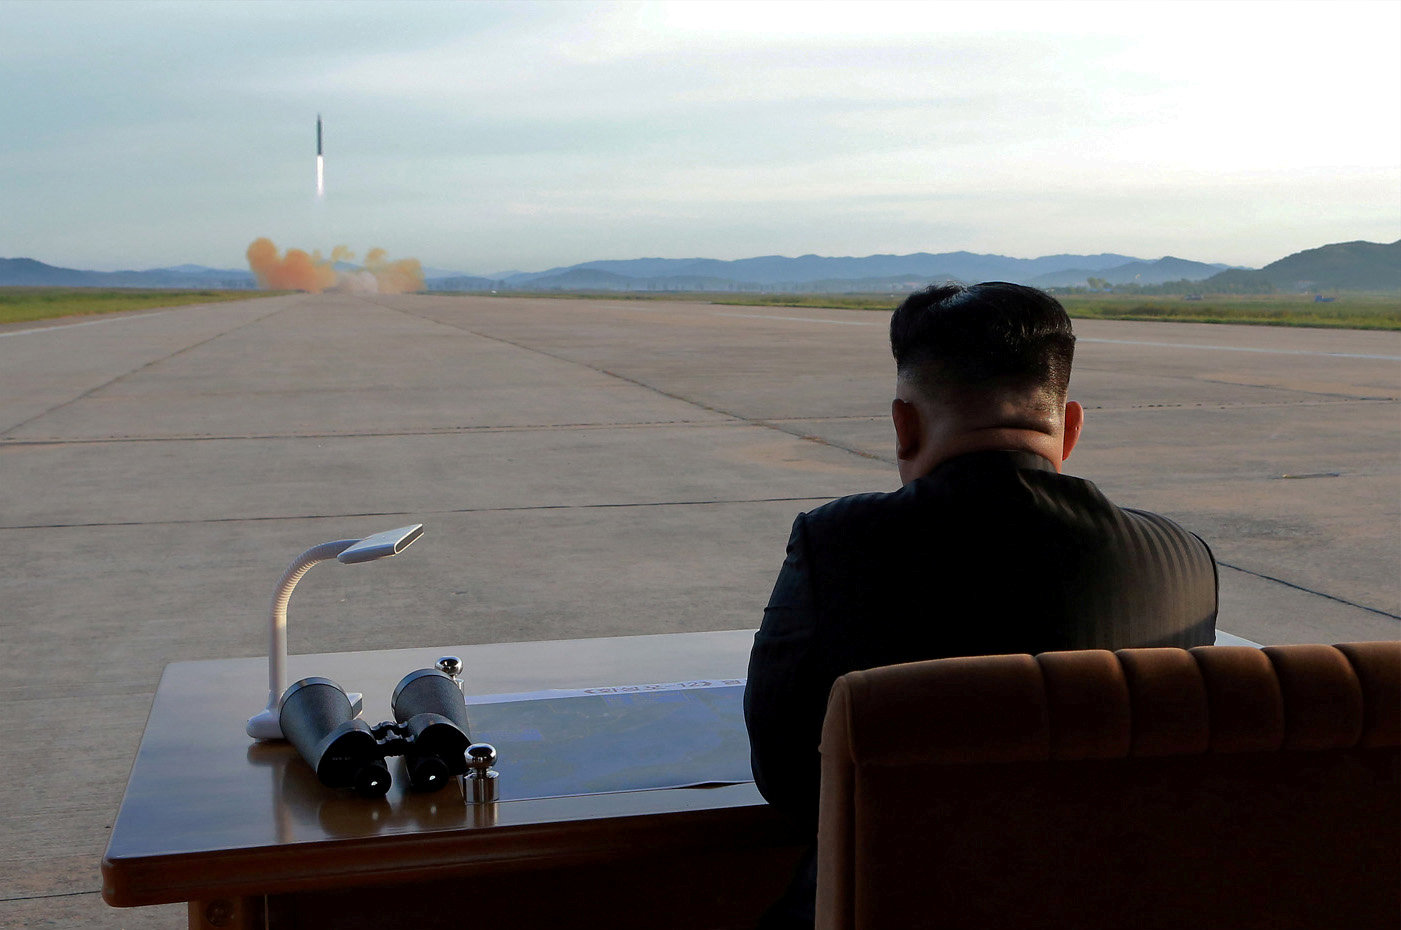 FILE PHOTO: North Korean leader Kim Jong Un watches the launch of a Hwasong-12 missile in this undated photo released by North Korea's Korean Central News Agency (KCNA) on September 16, 2017. KCNA via REUTERS